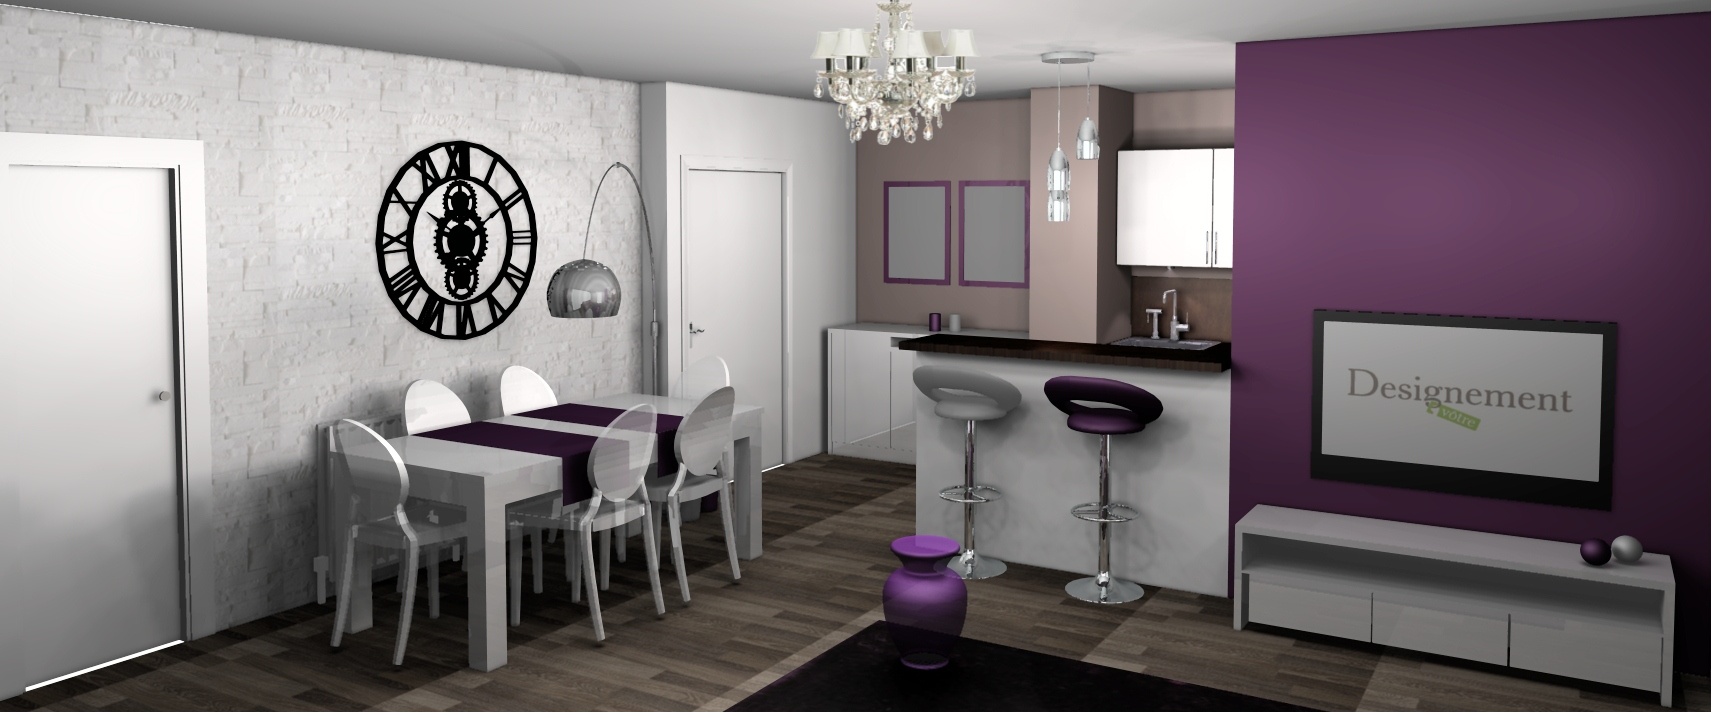 Mod le id e d co salle manger prune for Decoration salon prune